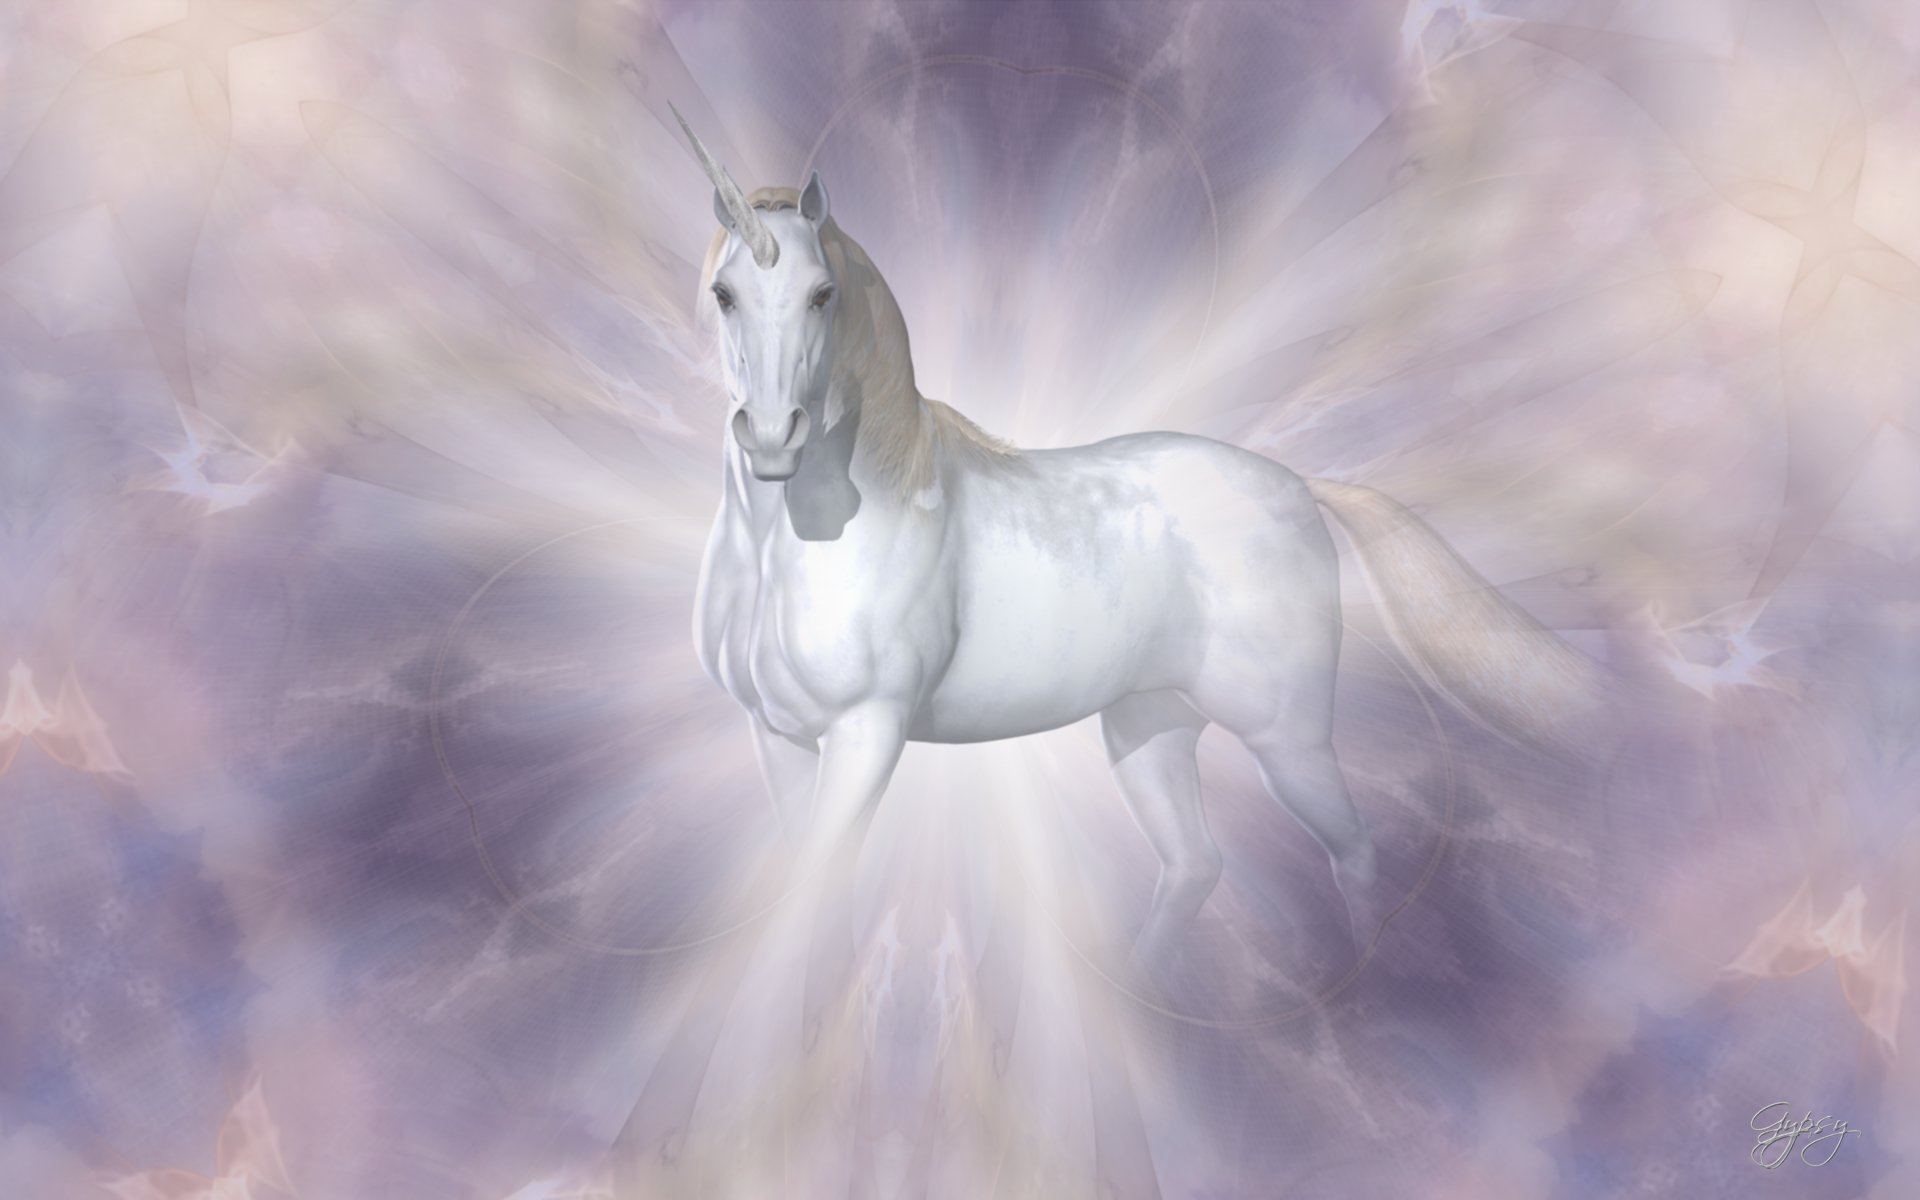 Hd wallpaper unicorn - Fantasy Unicorn Wallpaper